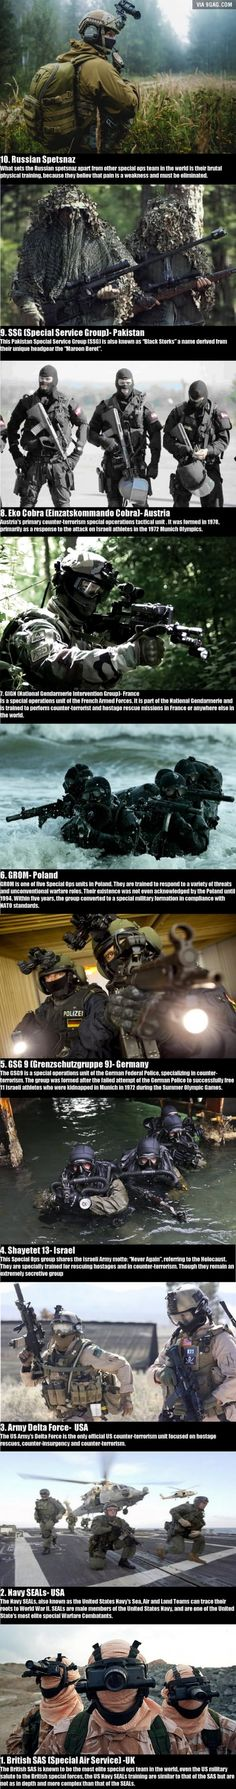 Top Ten Special Ops Teams in the World